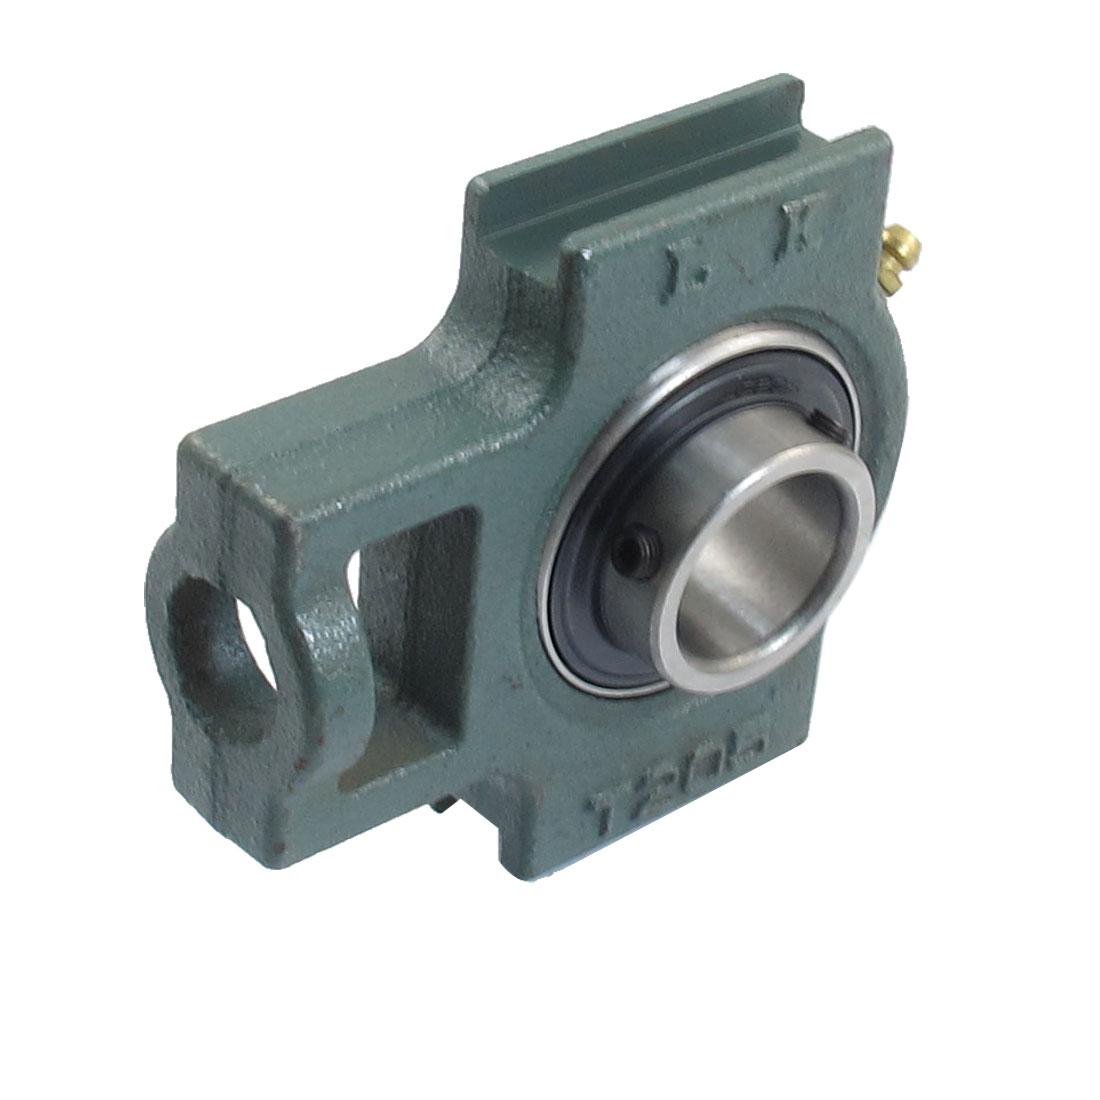 Uct205 25Mm Mounted Block Cast Housing Self-Aligning Pillow Bearing